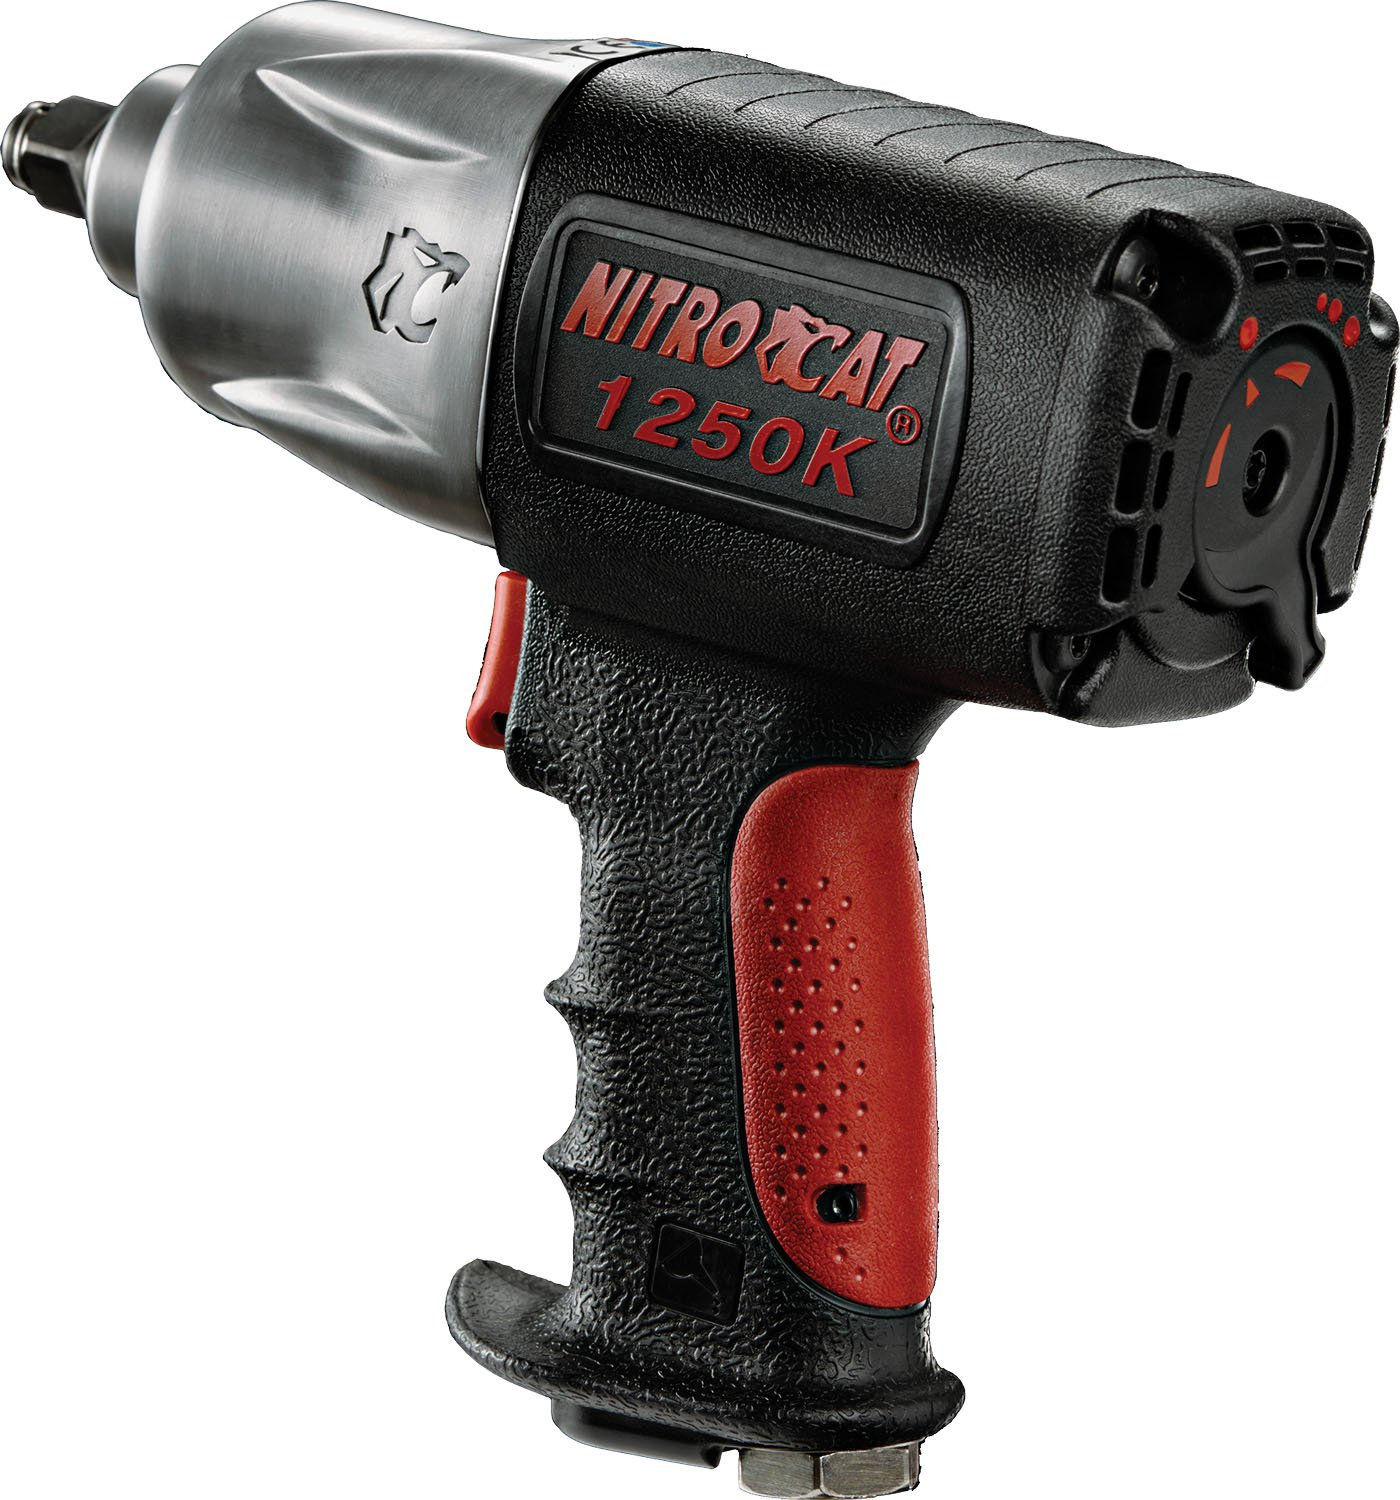 ACA1275-XL AIRCAT 1275-XL b39o9i5r5 1/2 m9p588t53r3 in. High-Low Torque Air Impact Wrench klodxzaq99 yqnmcsao89 Lightweight in 35p81r03h design and construction, AirCat's 1275